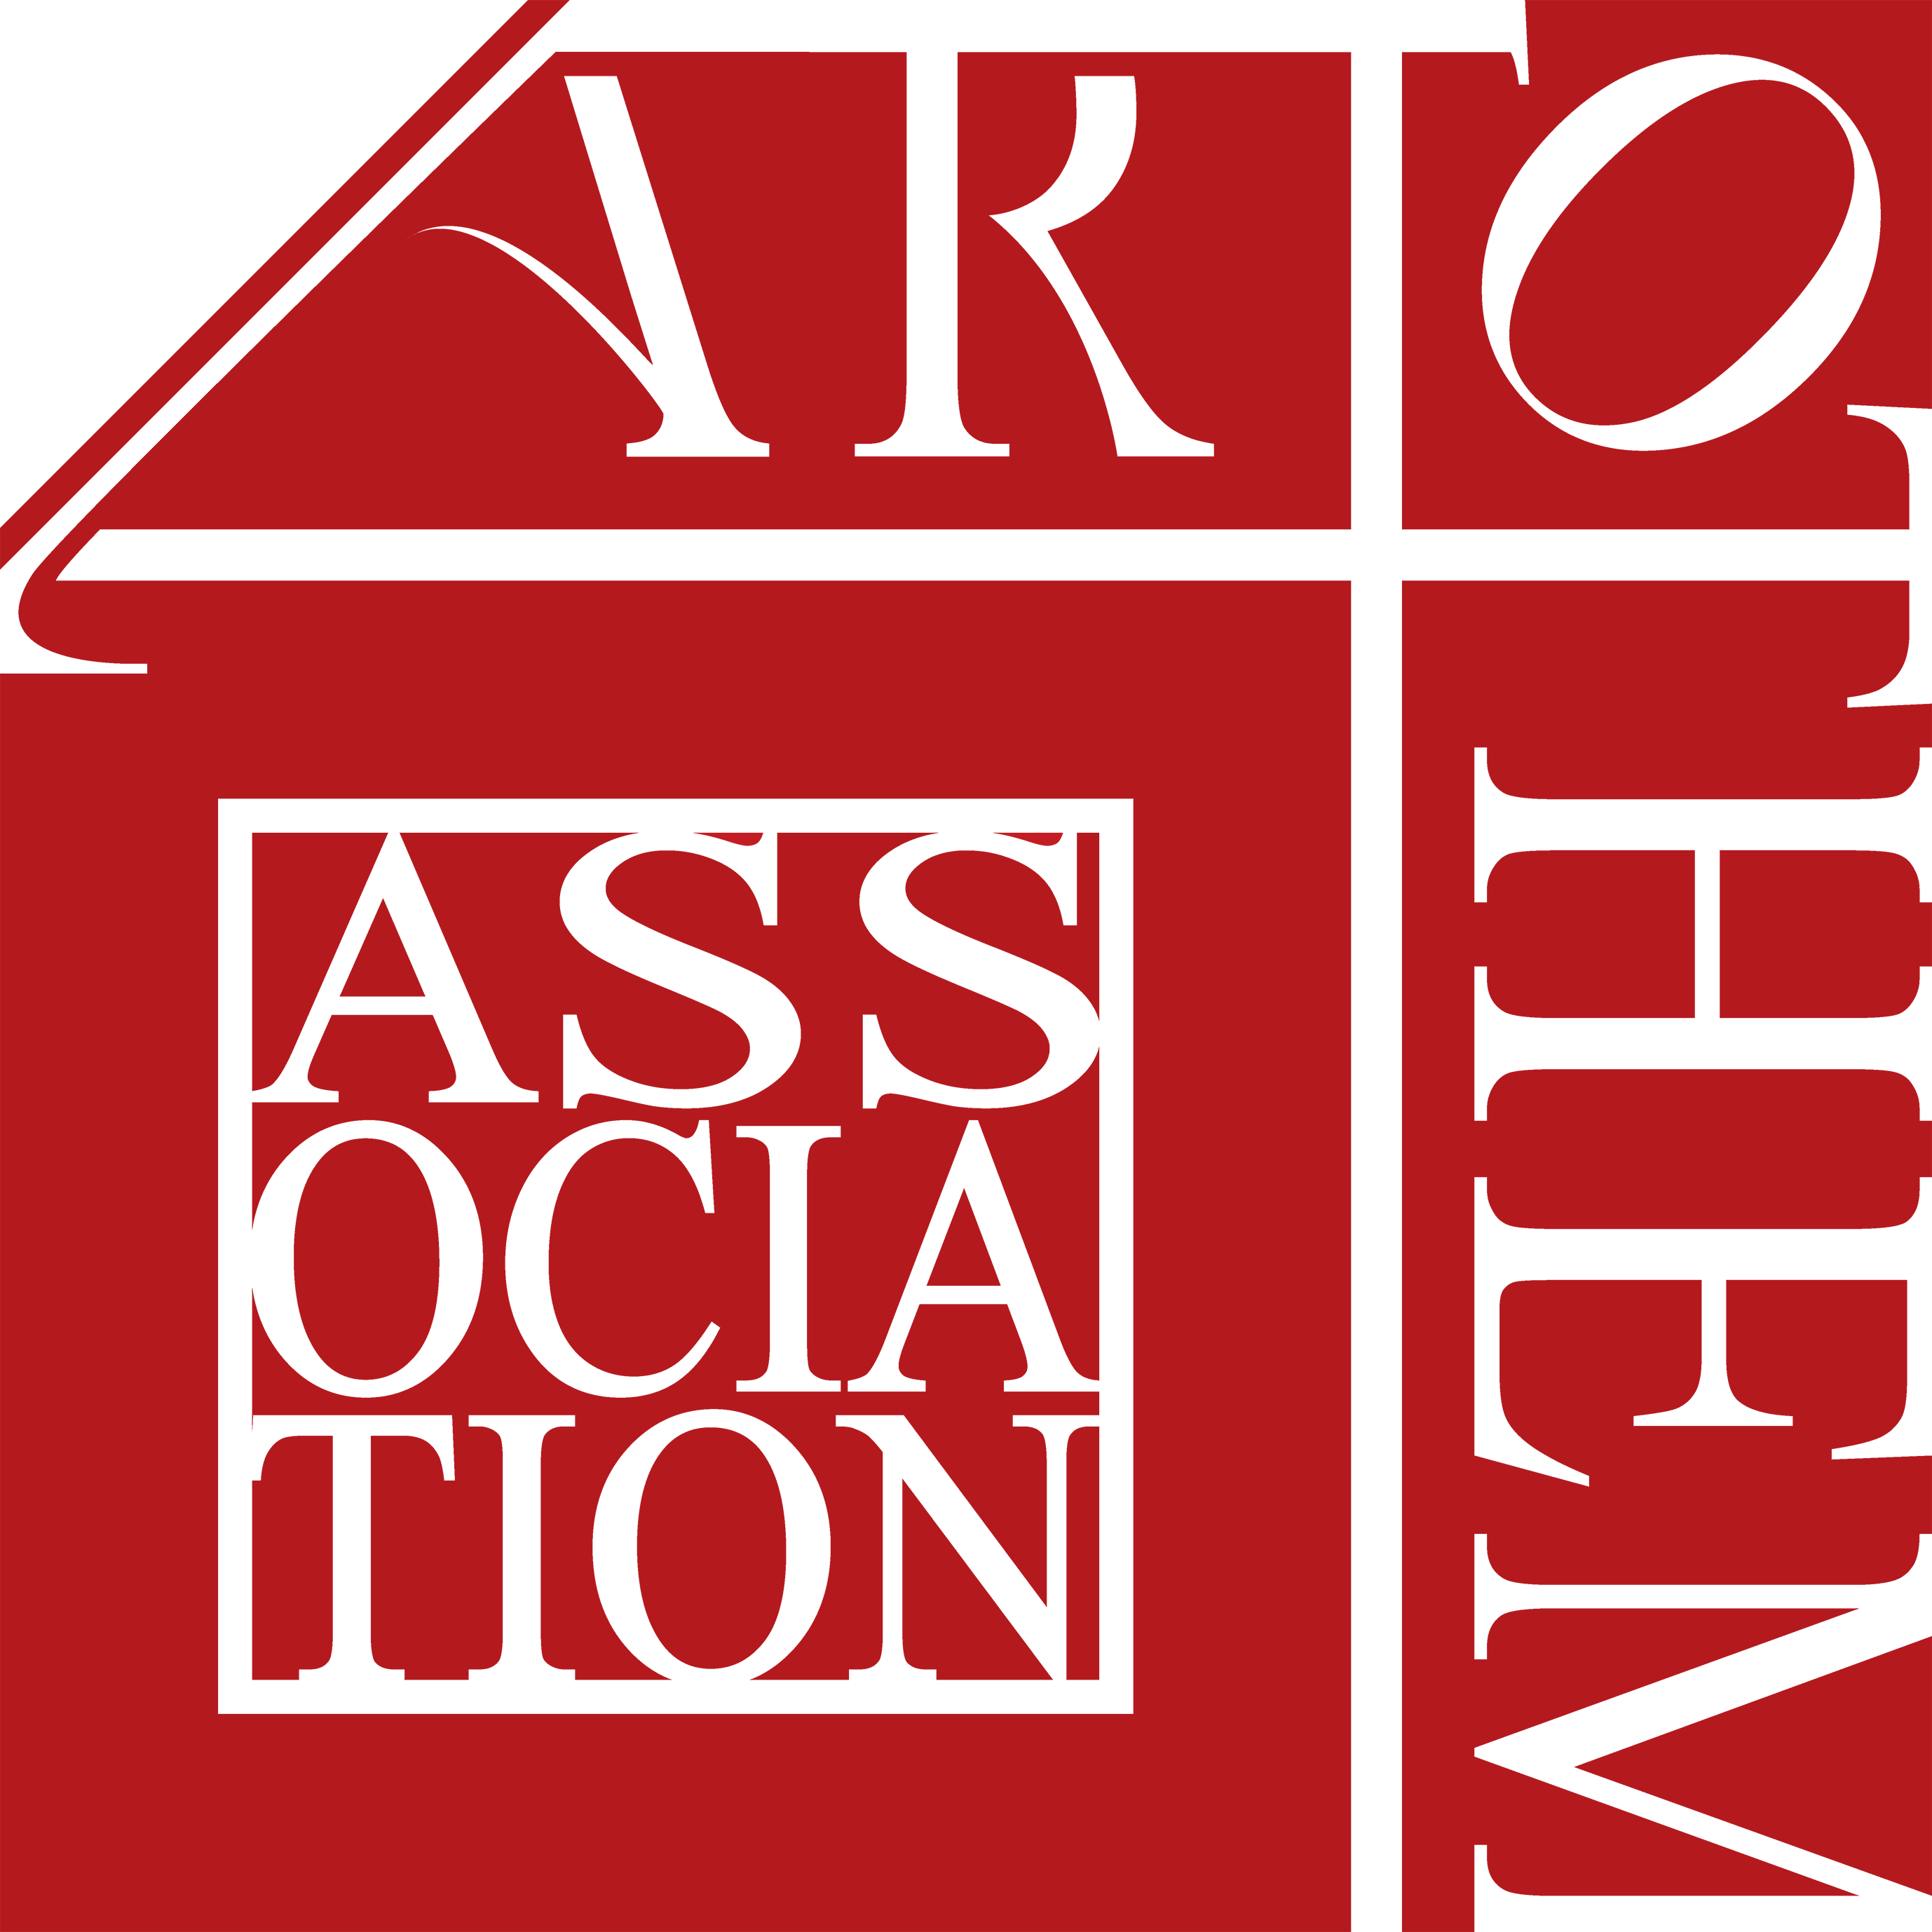 LOGO_RED_TXT_(RVB 180 25 30)_Red